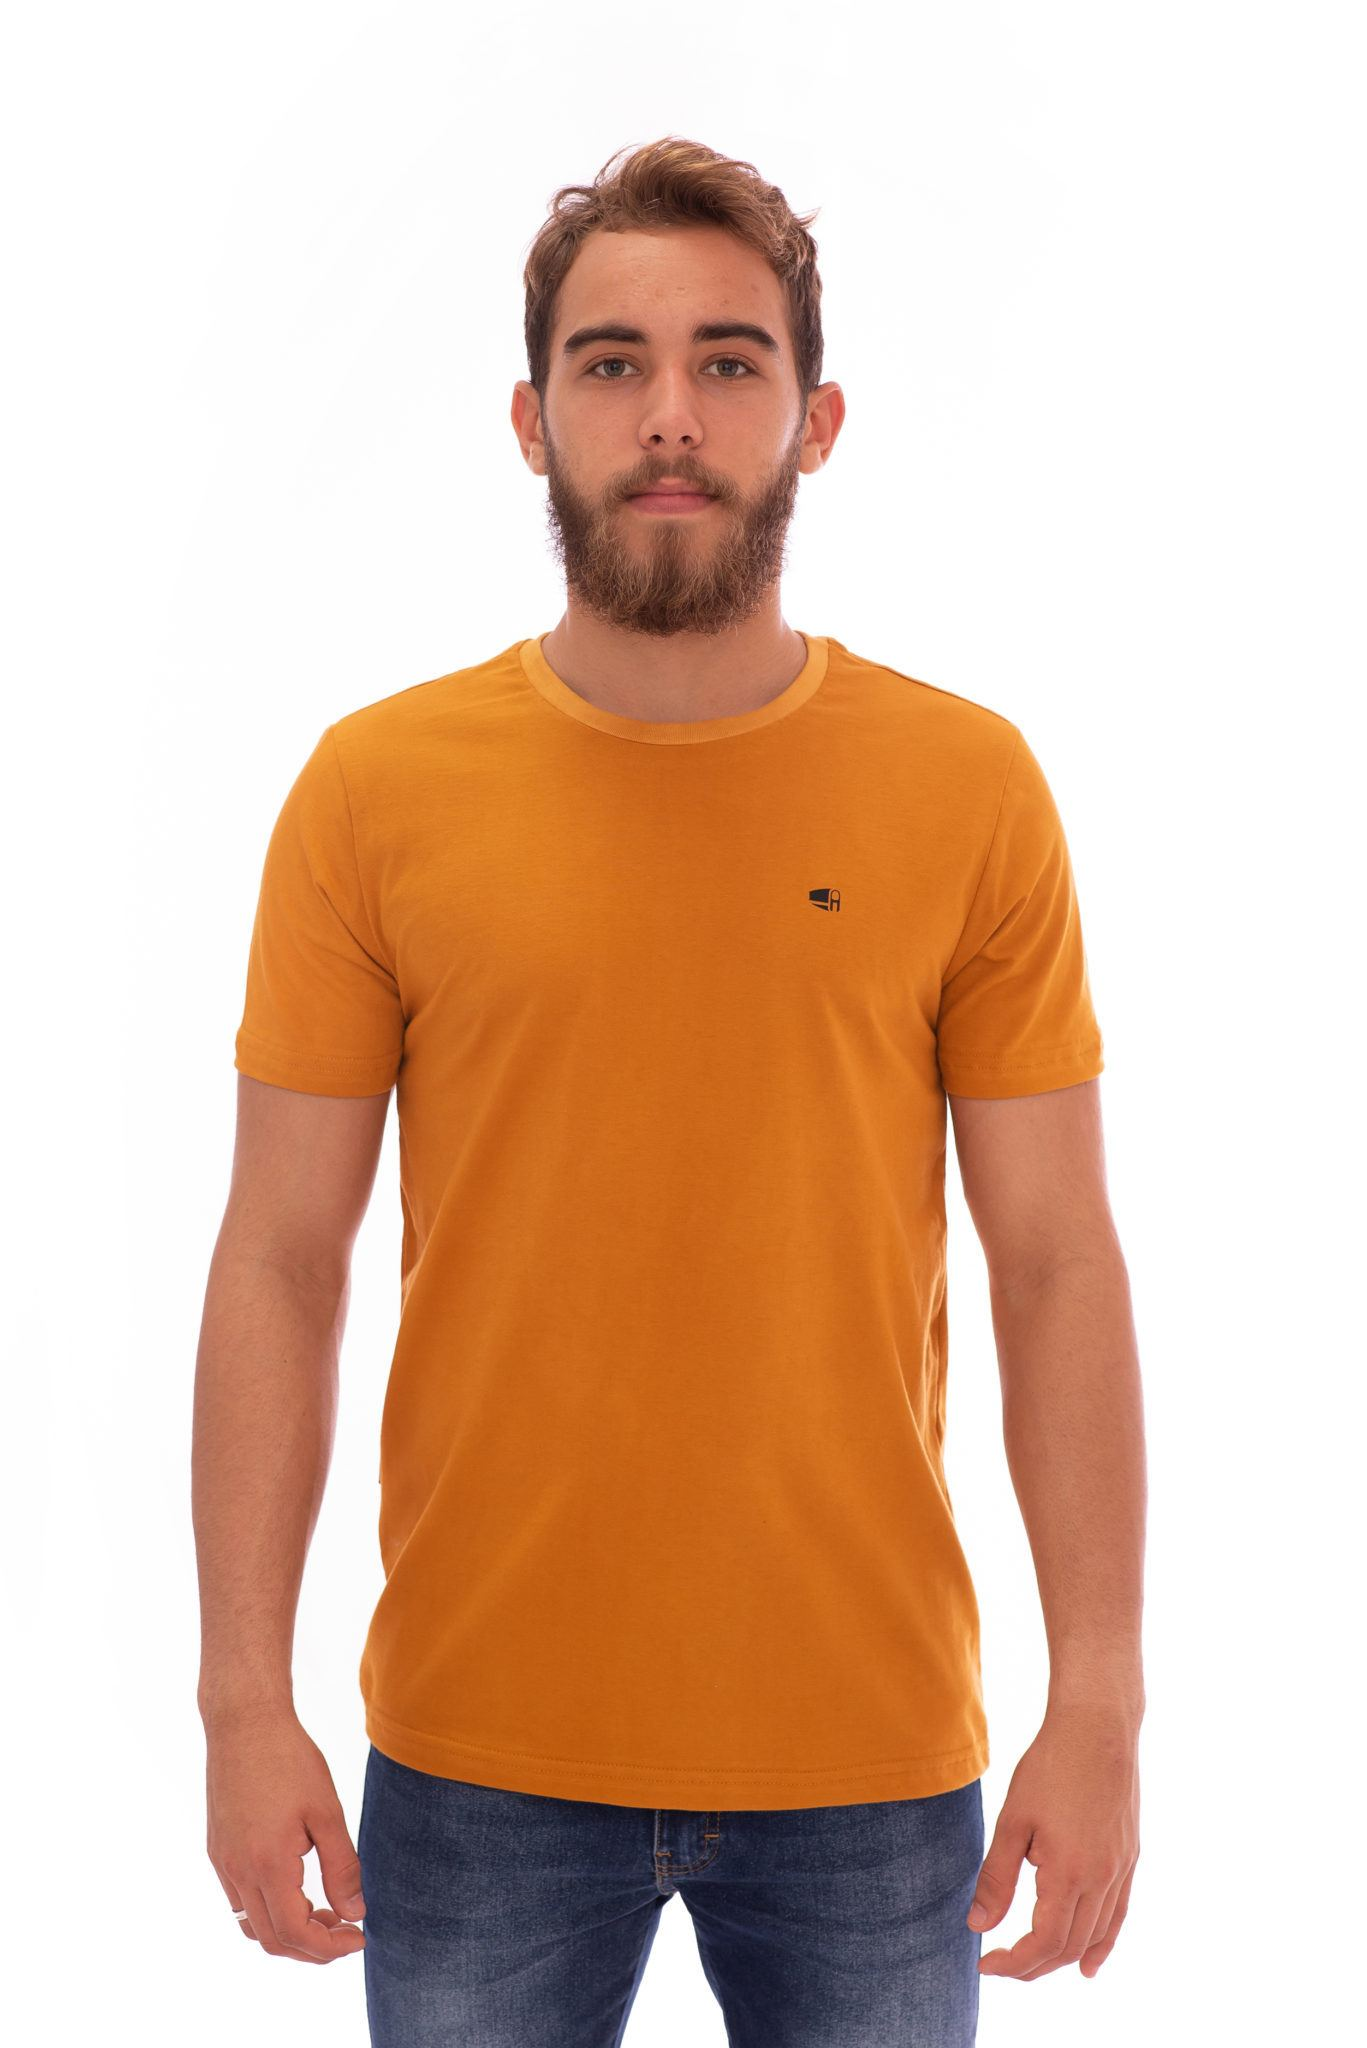 CAMISETA MASCULINA AEE SURF SLIM NEW SPLASH MOSTAZA REF. 1309